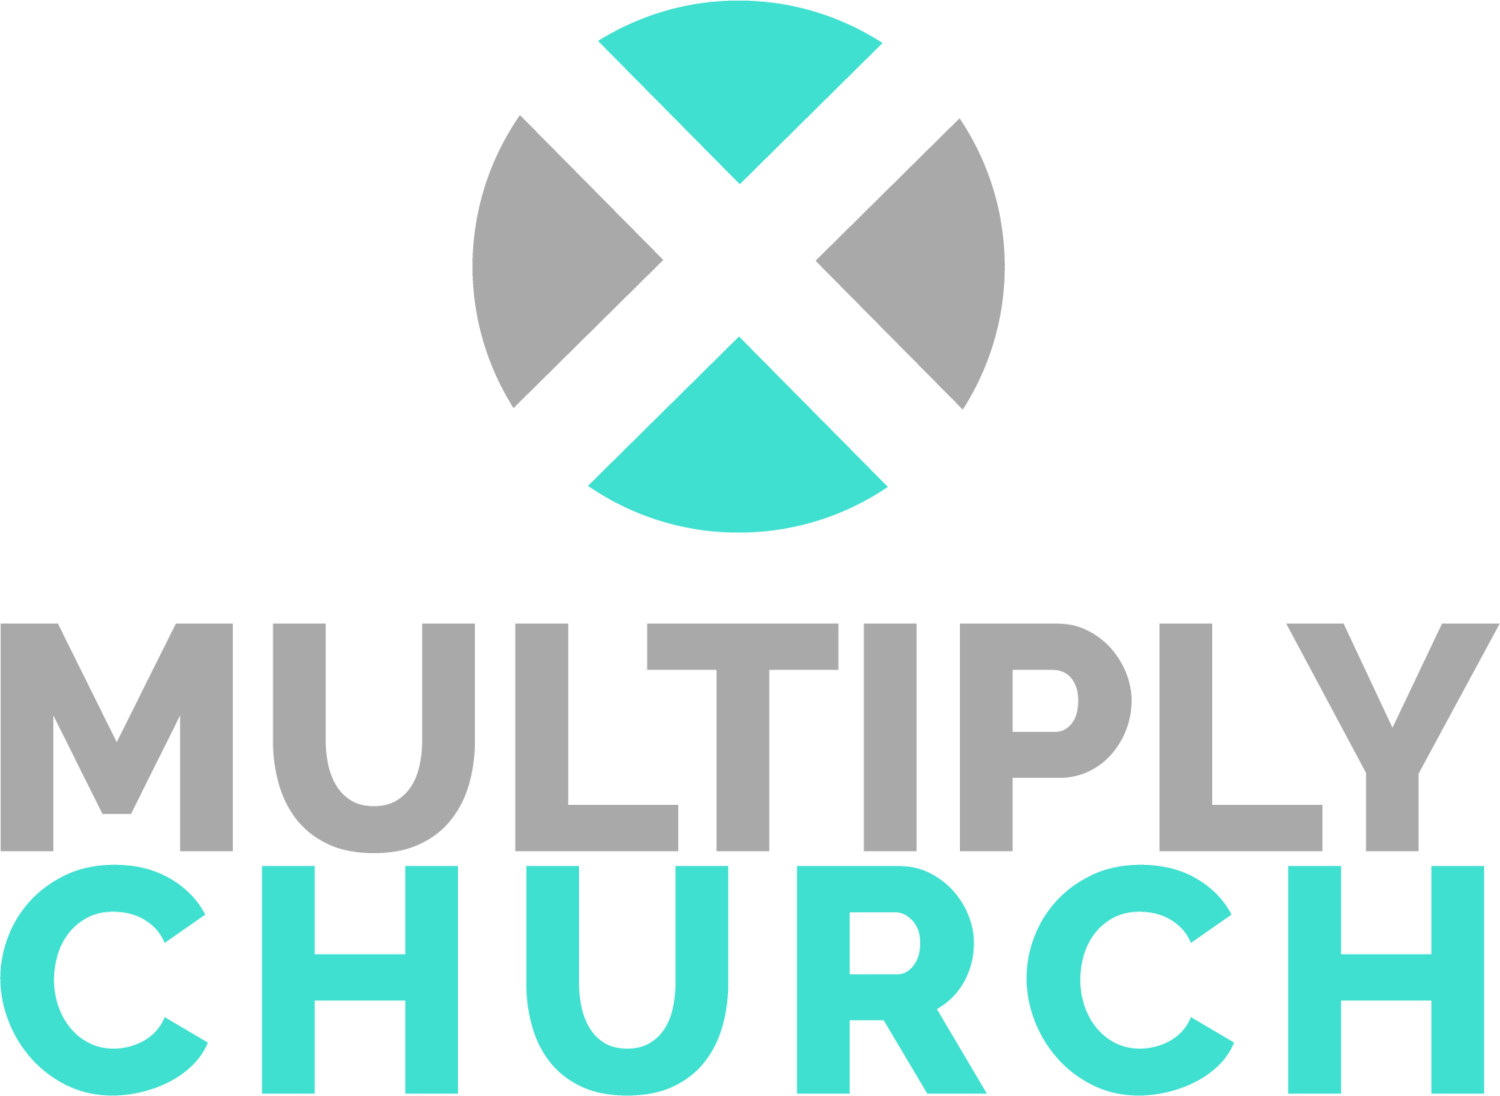 MULTIPLY CHURCH